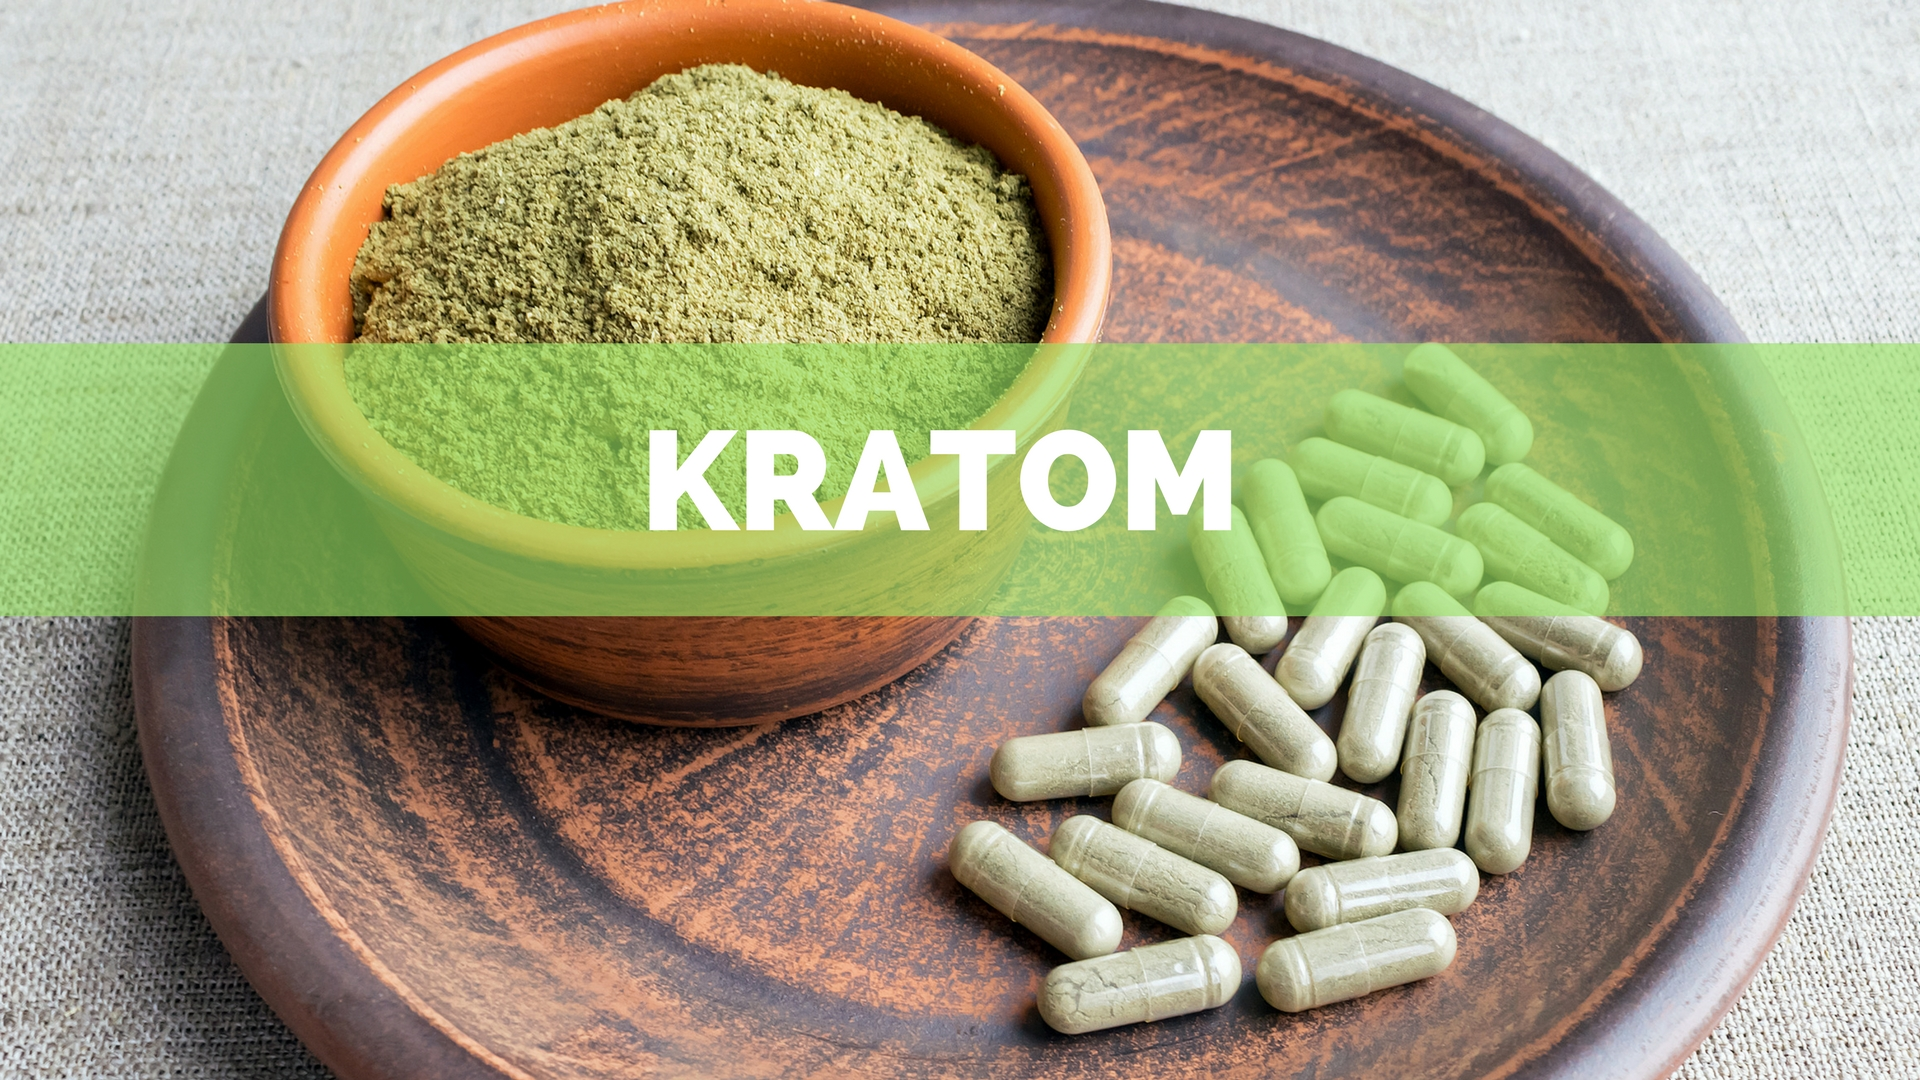 Is Kratom Addictive or Not?